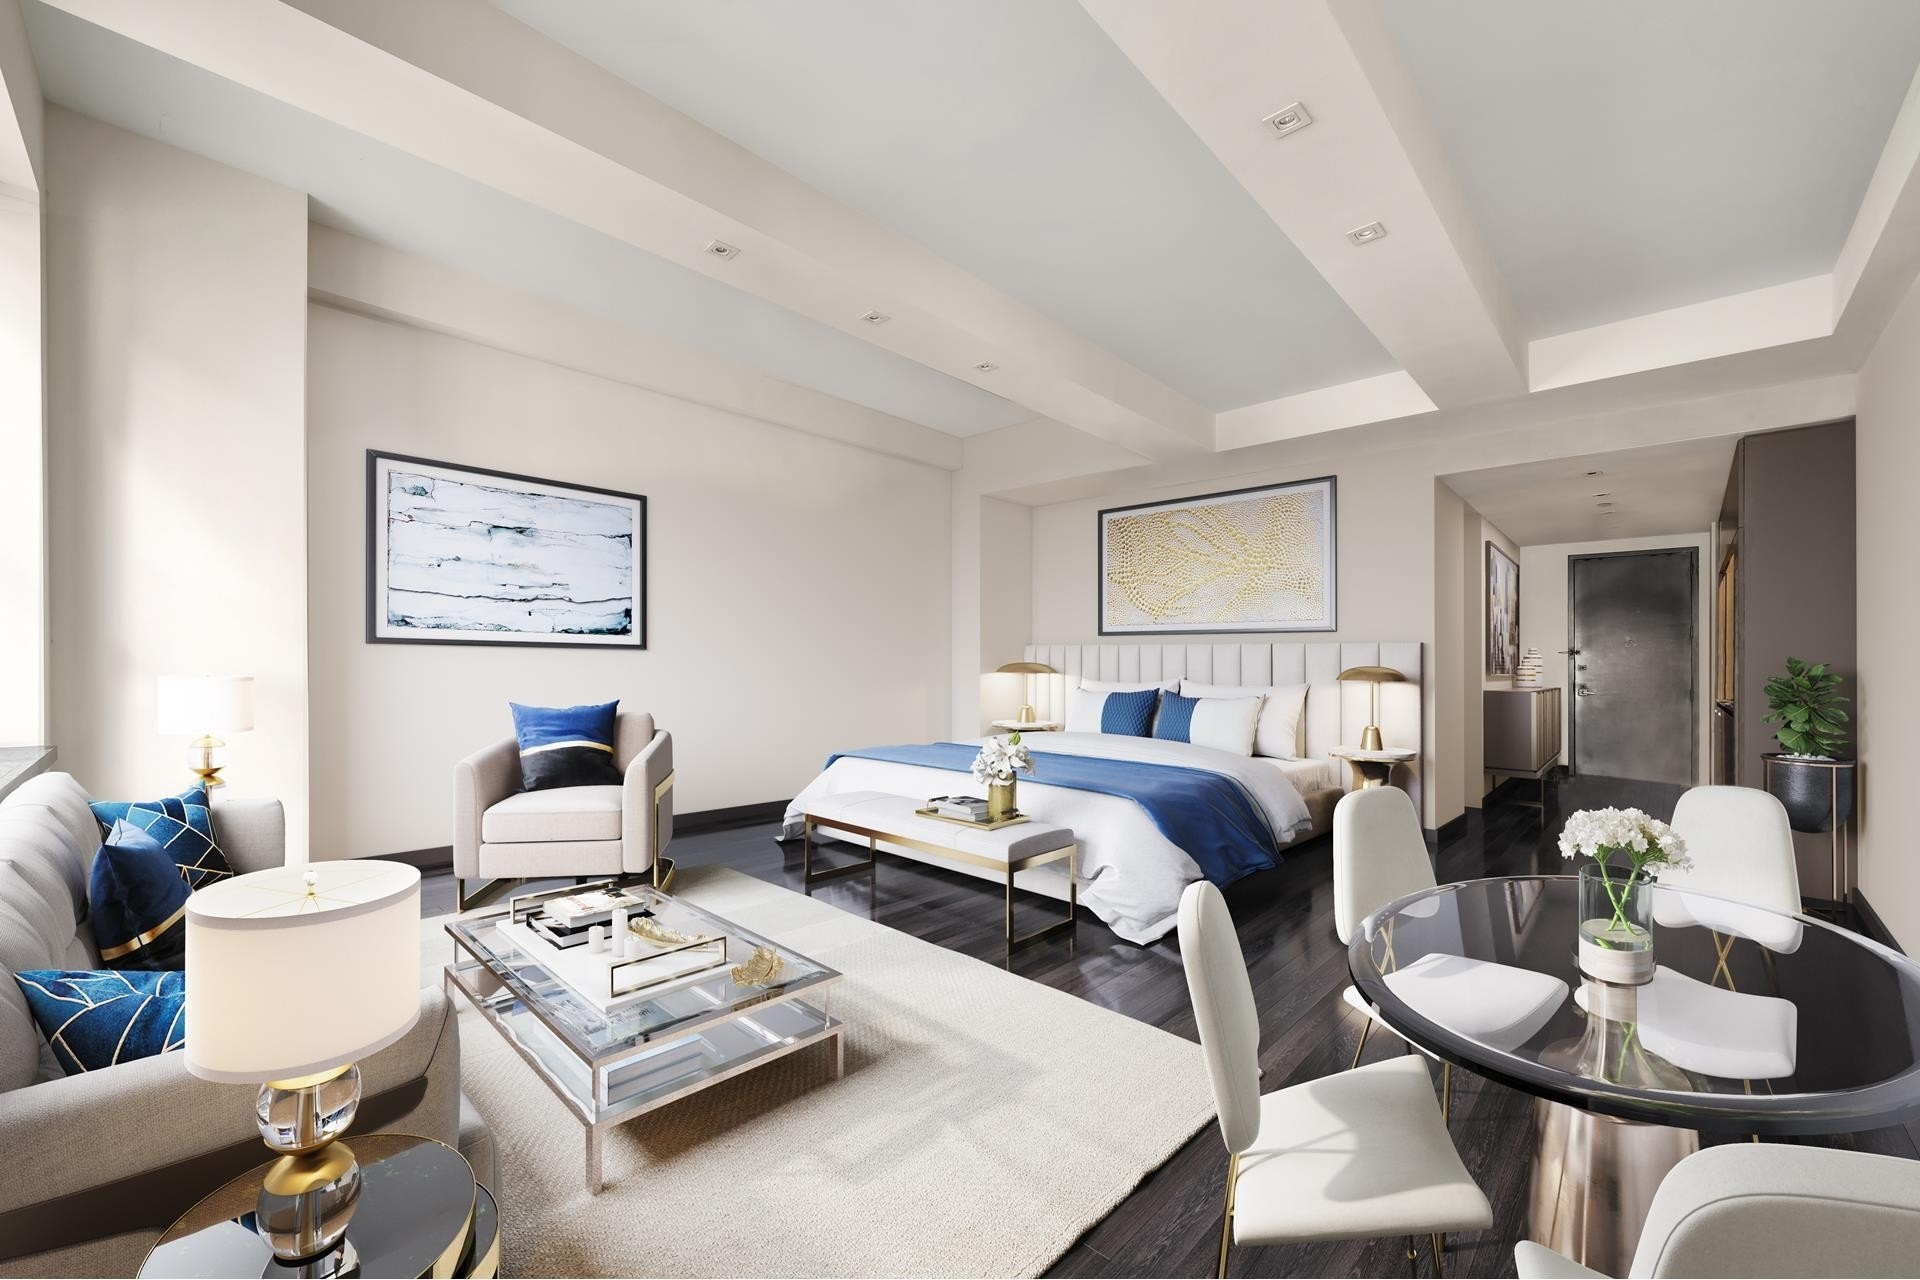 Condominium at 20 Pine - The Collection, 20 Pine St, 2802 New York